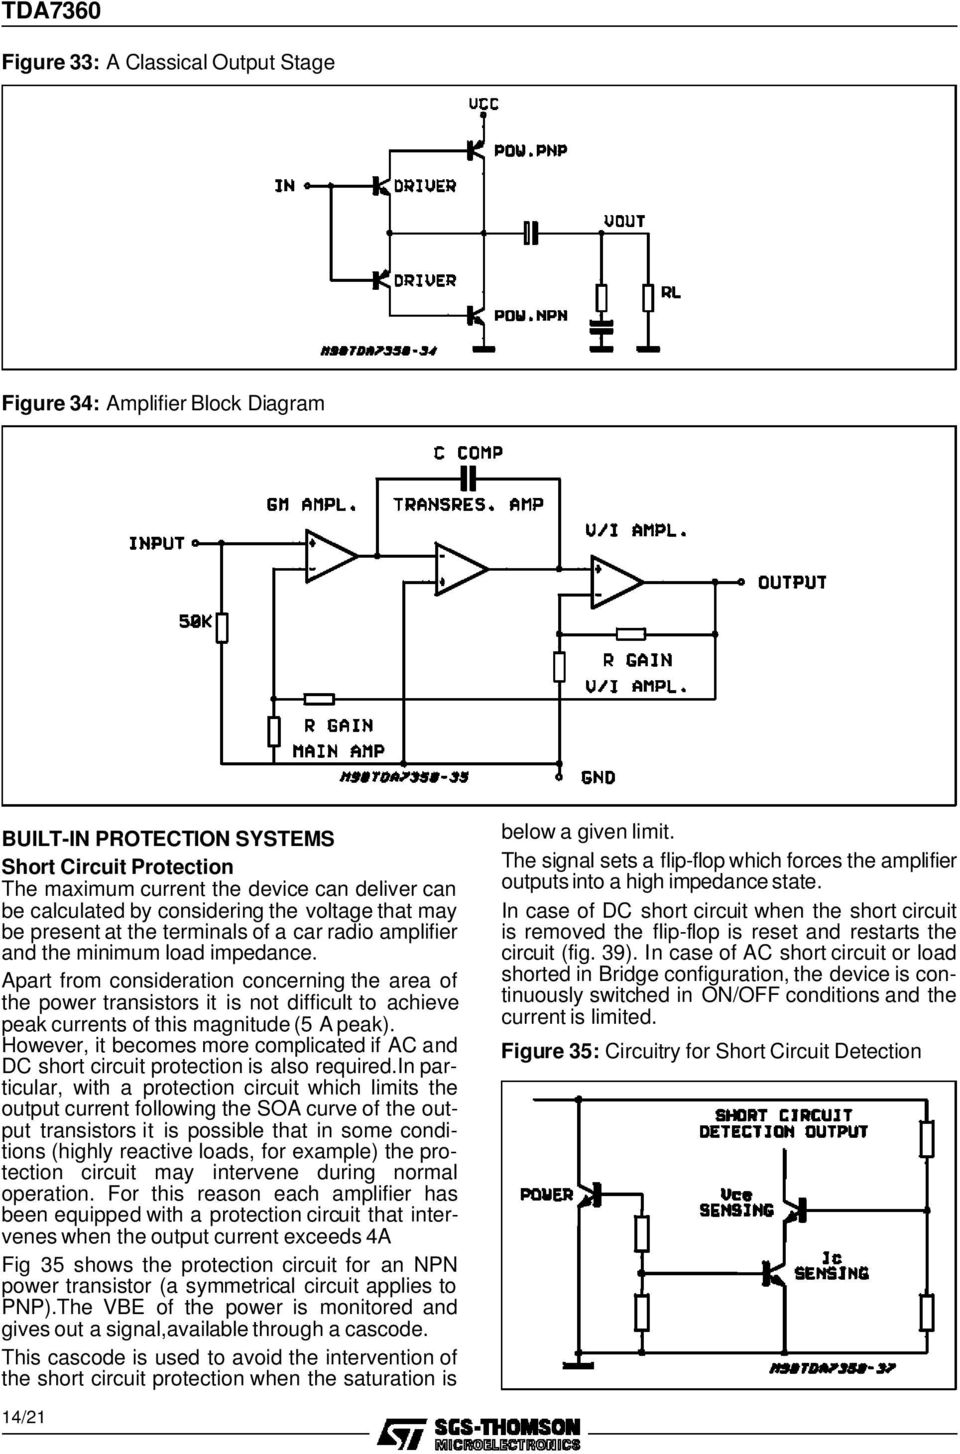 Tda W Bridge Stereo Audio Amplifier With Clipping Detector Pdf 25w Hifi Mosfet Circuit Diagram Apart From Consideration Concerning The Area Of Power Transistors It Is Not Difficult To Achieve